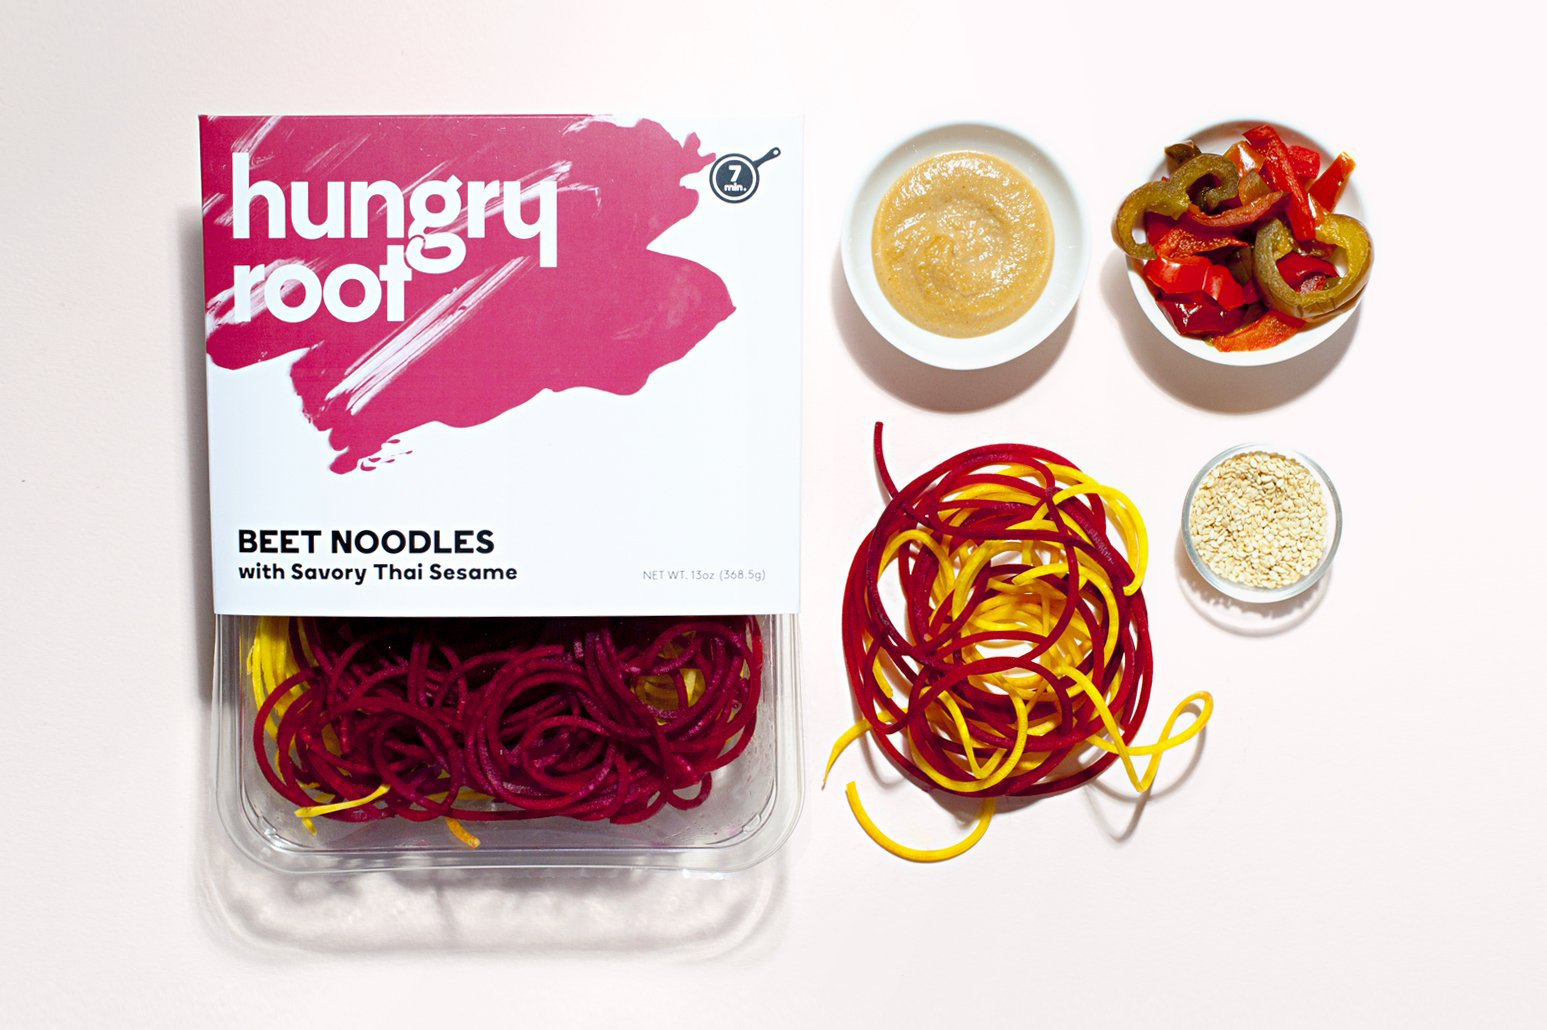 Hungry root healthy fast-food